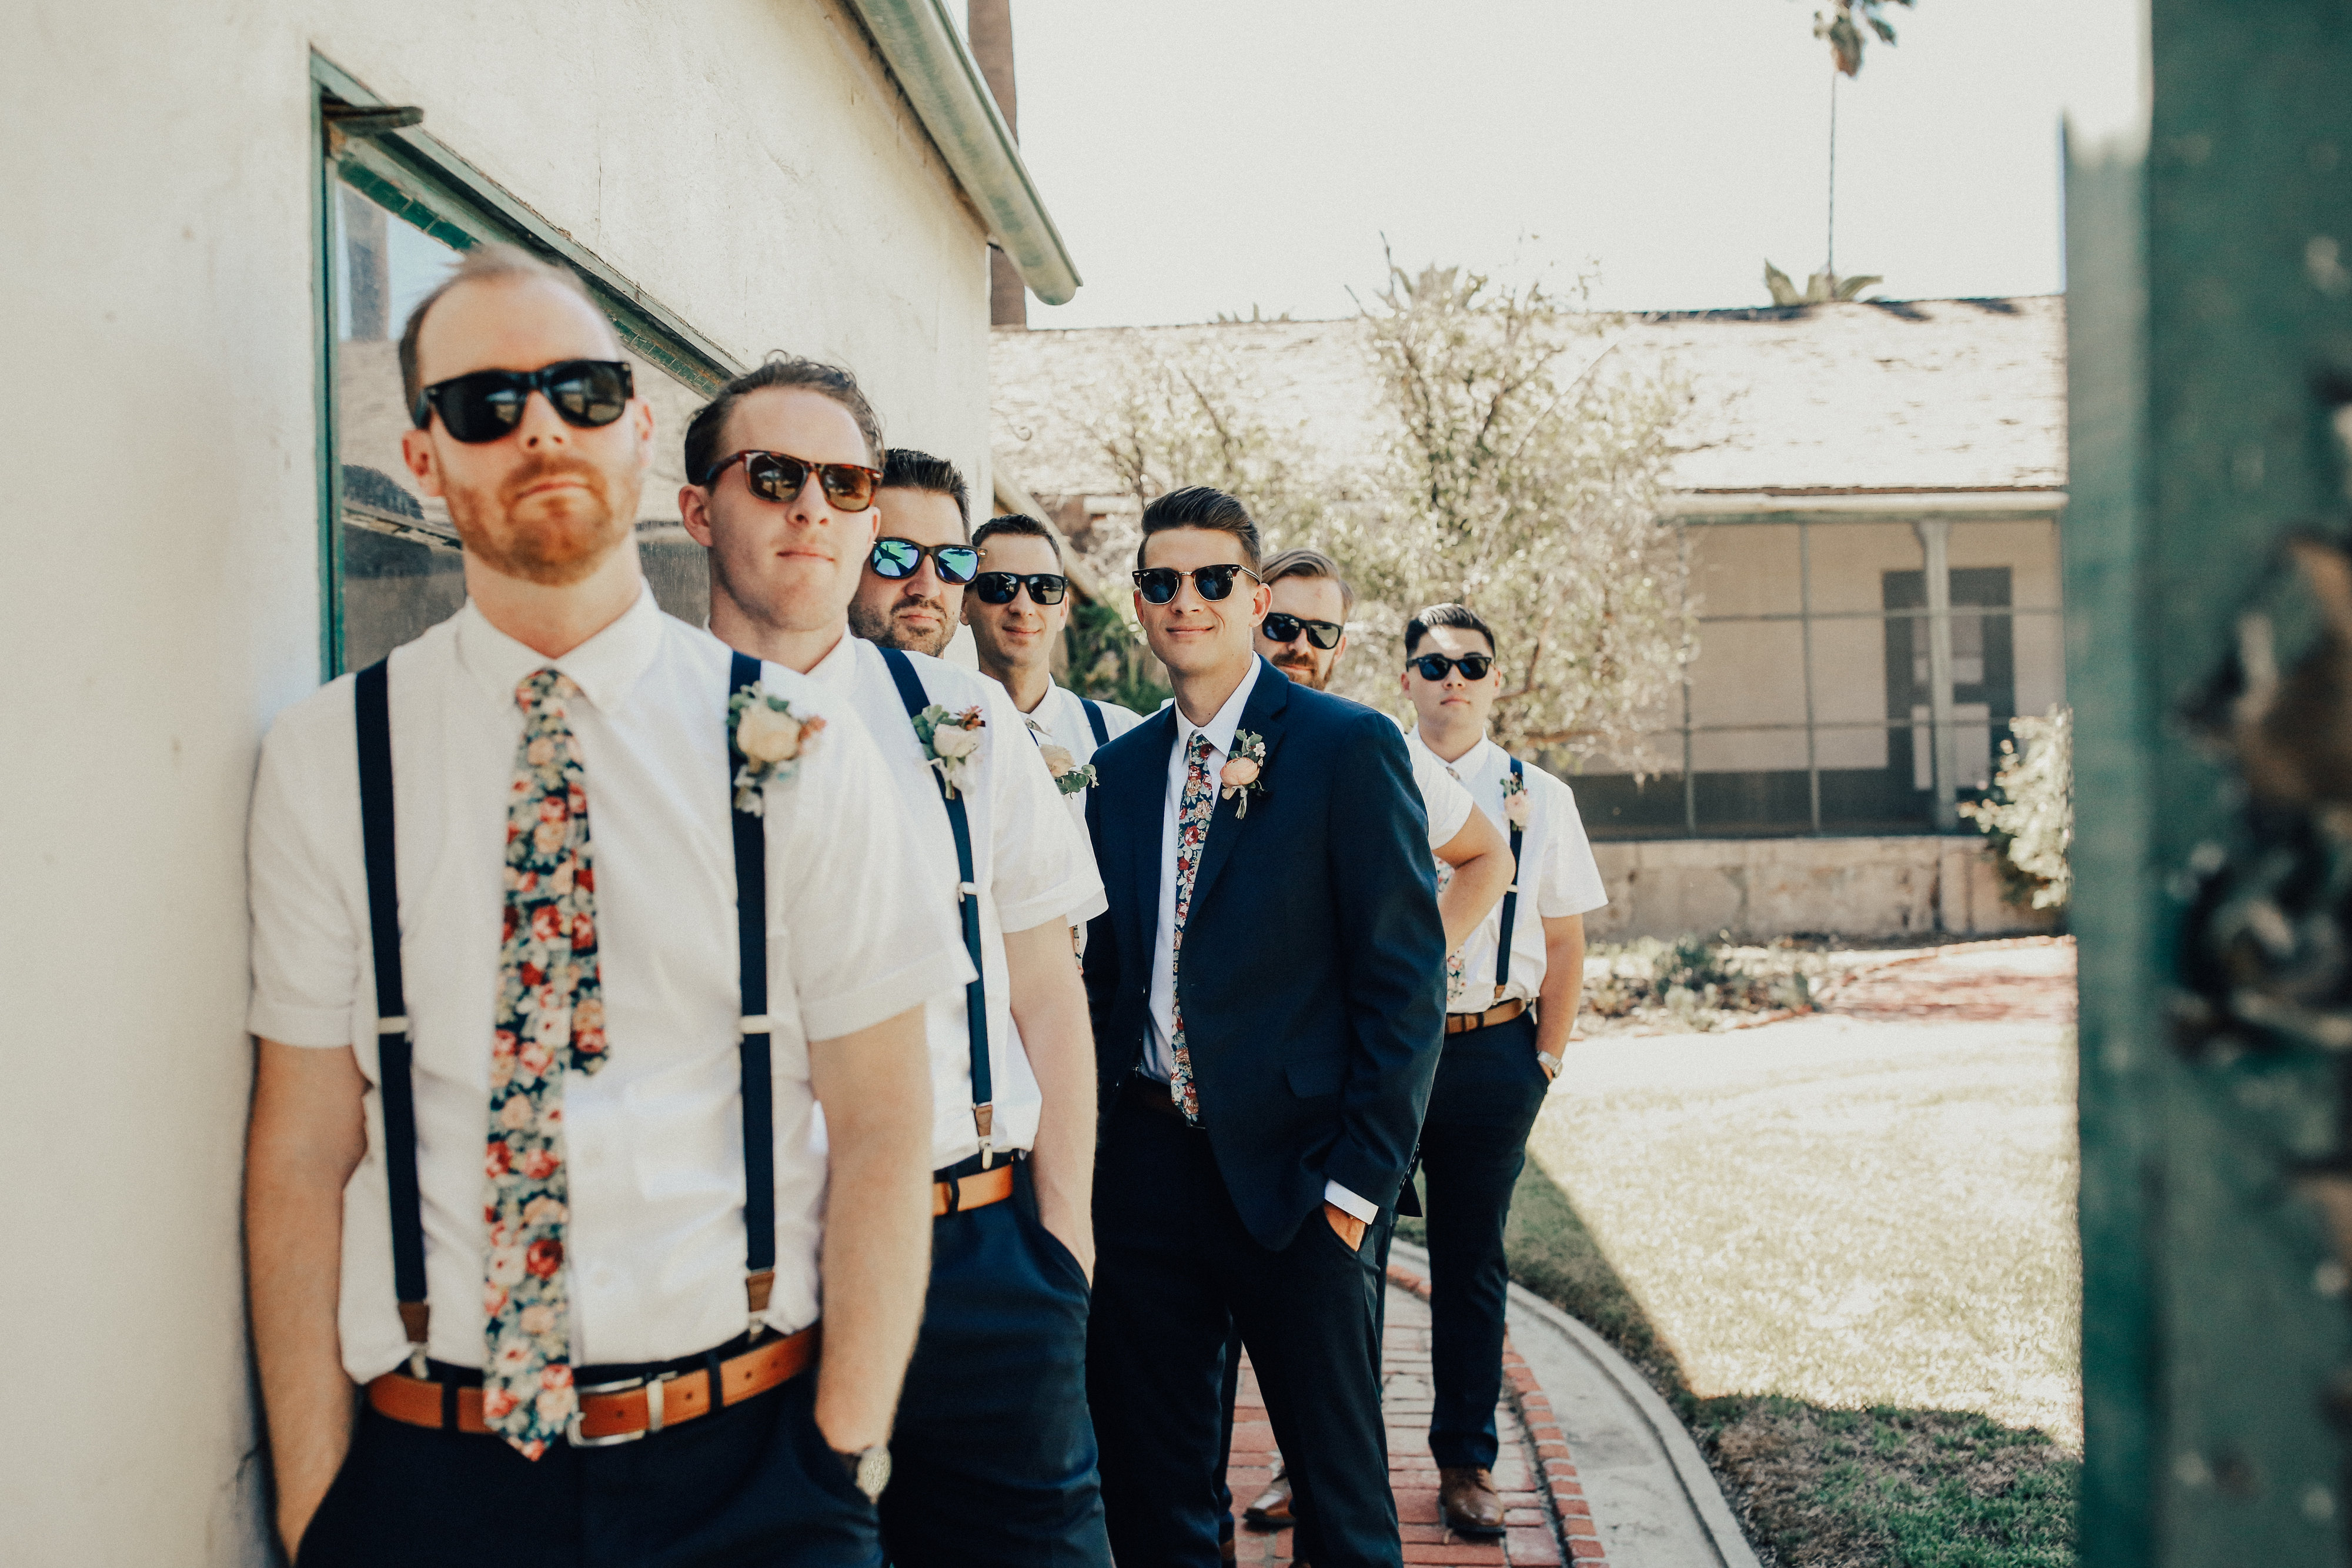 Groomsmen in blue suits and suspenders wear sunglasses and pose on wedding day